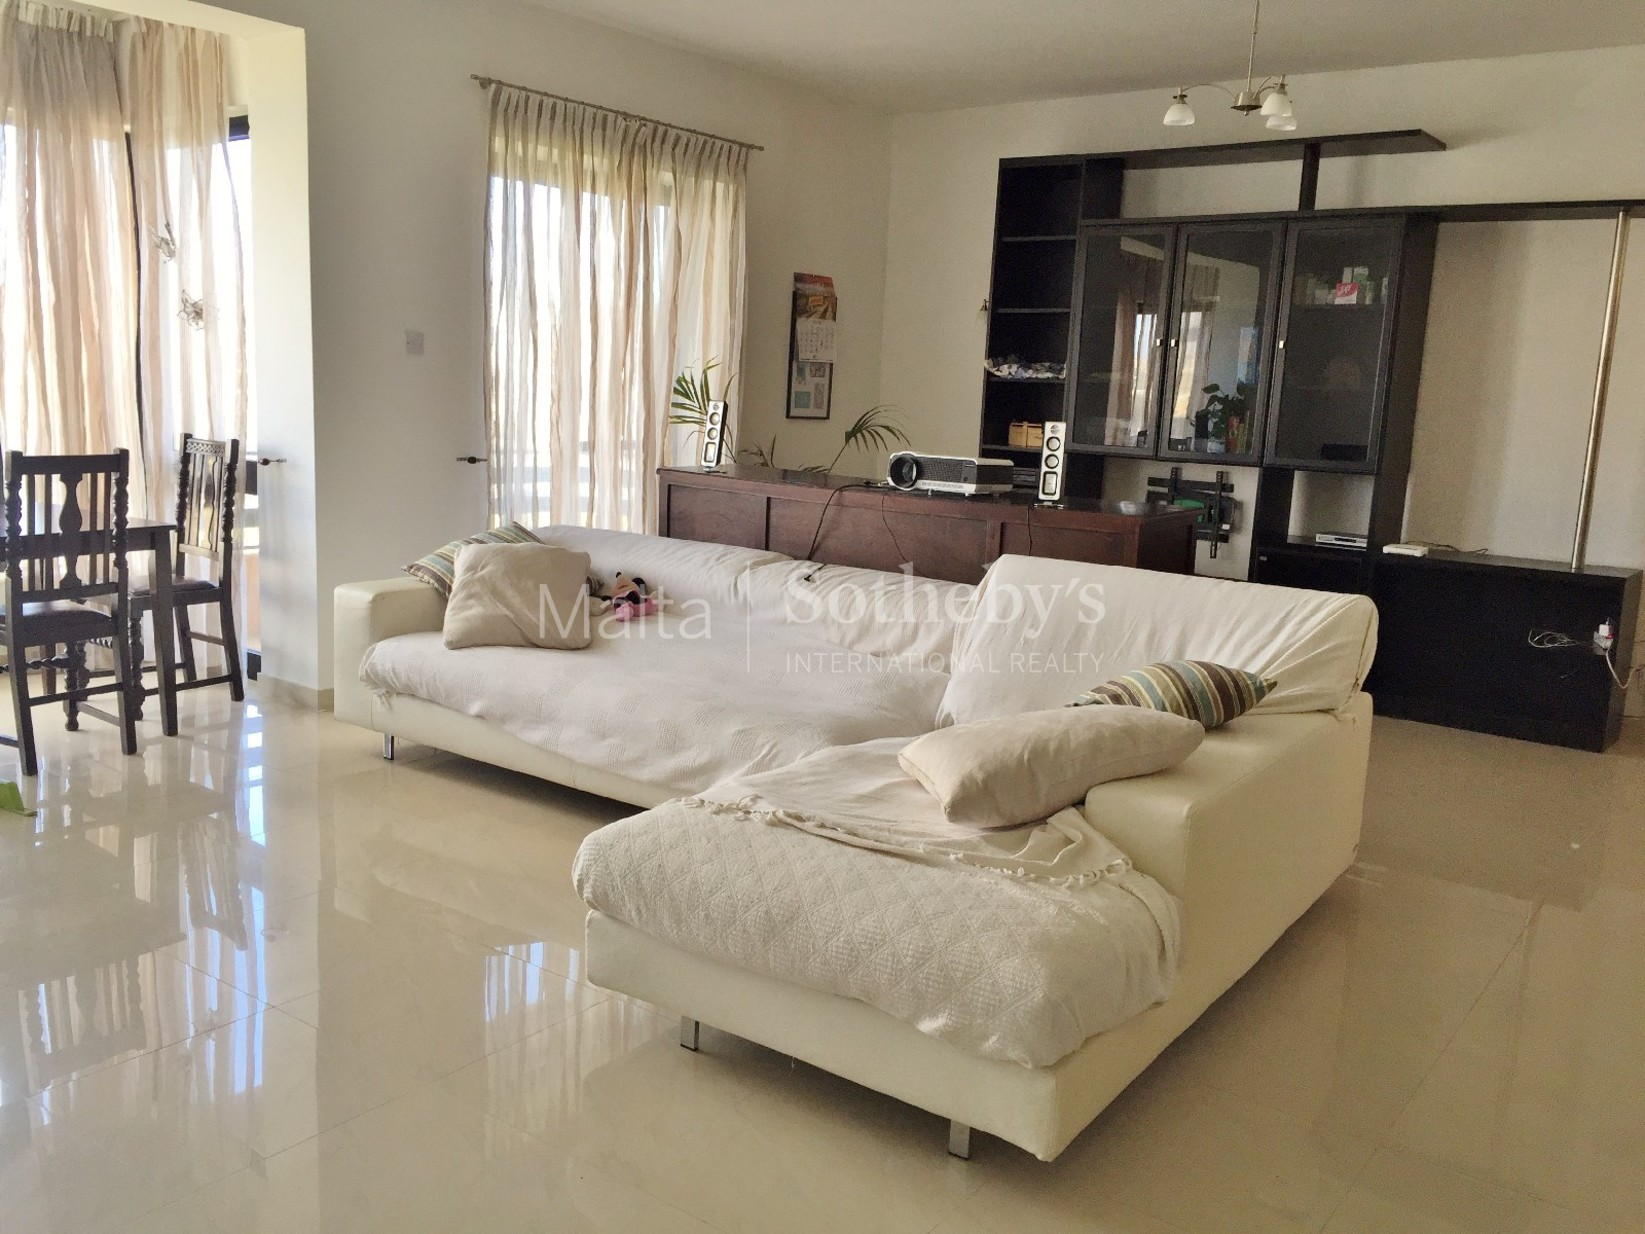 3 bed Apartment For Rent in Msida, Msida - thumb 7